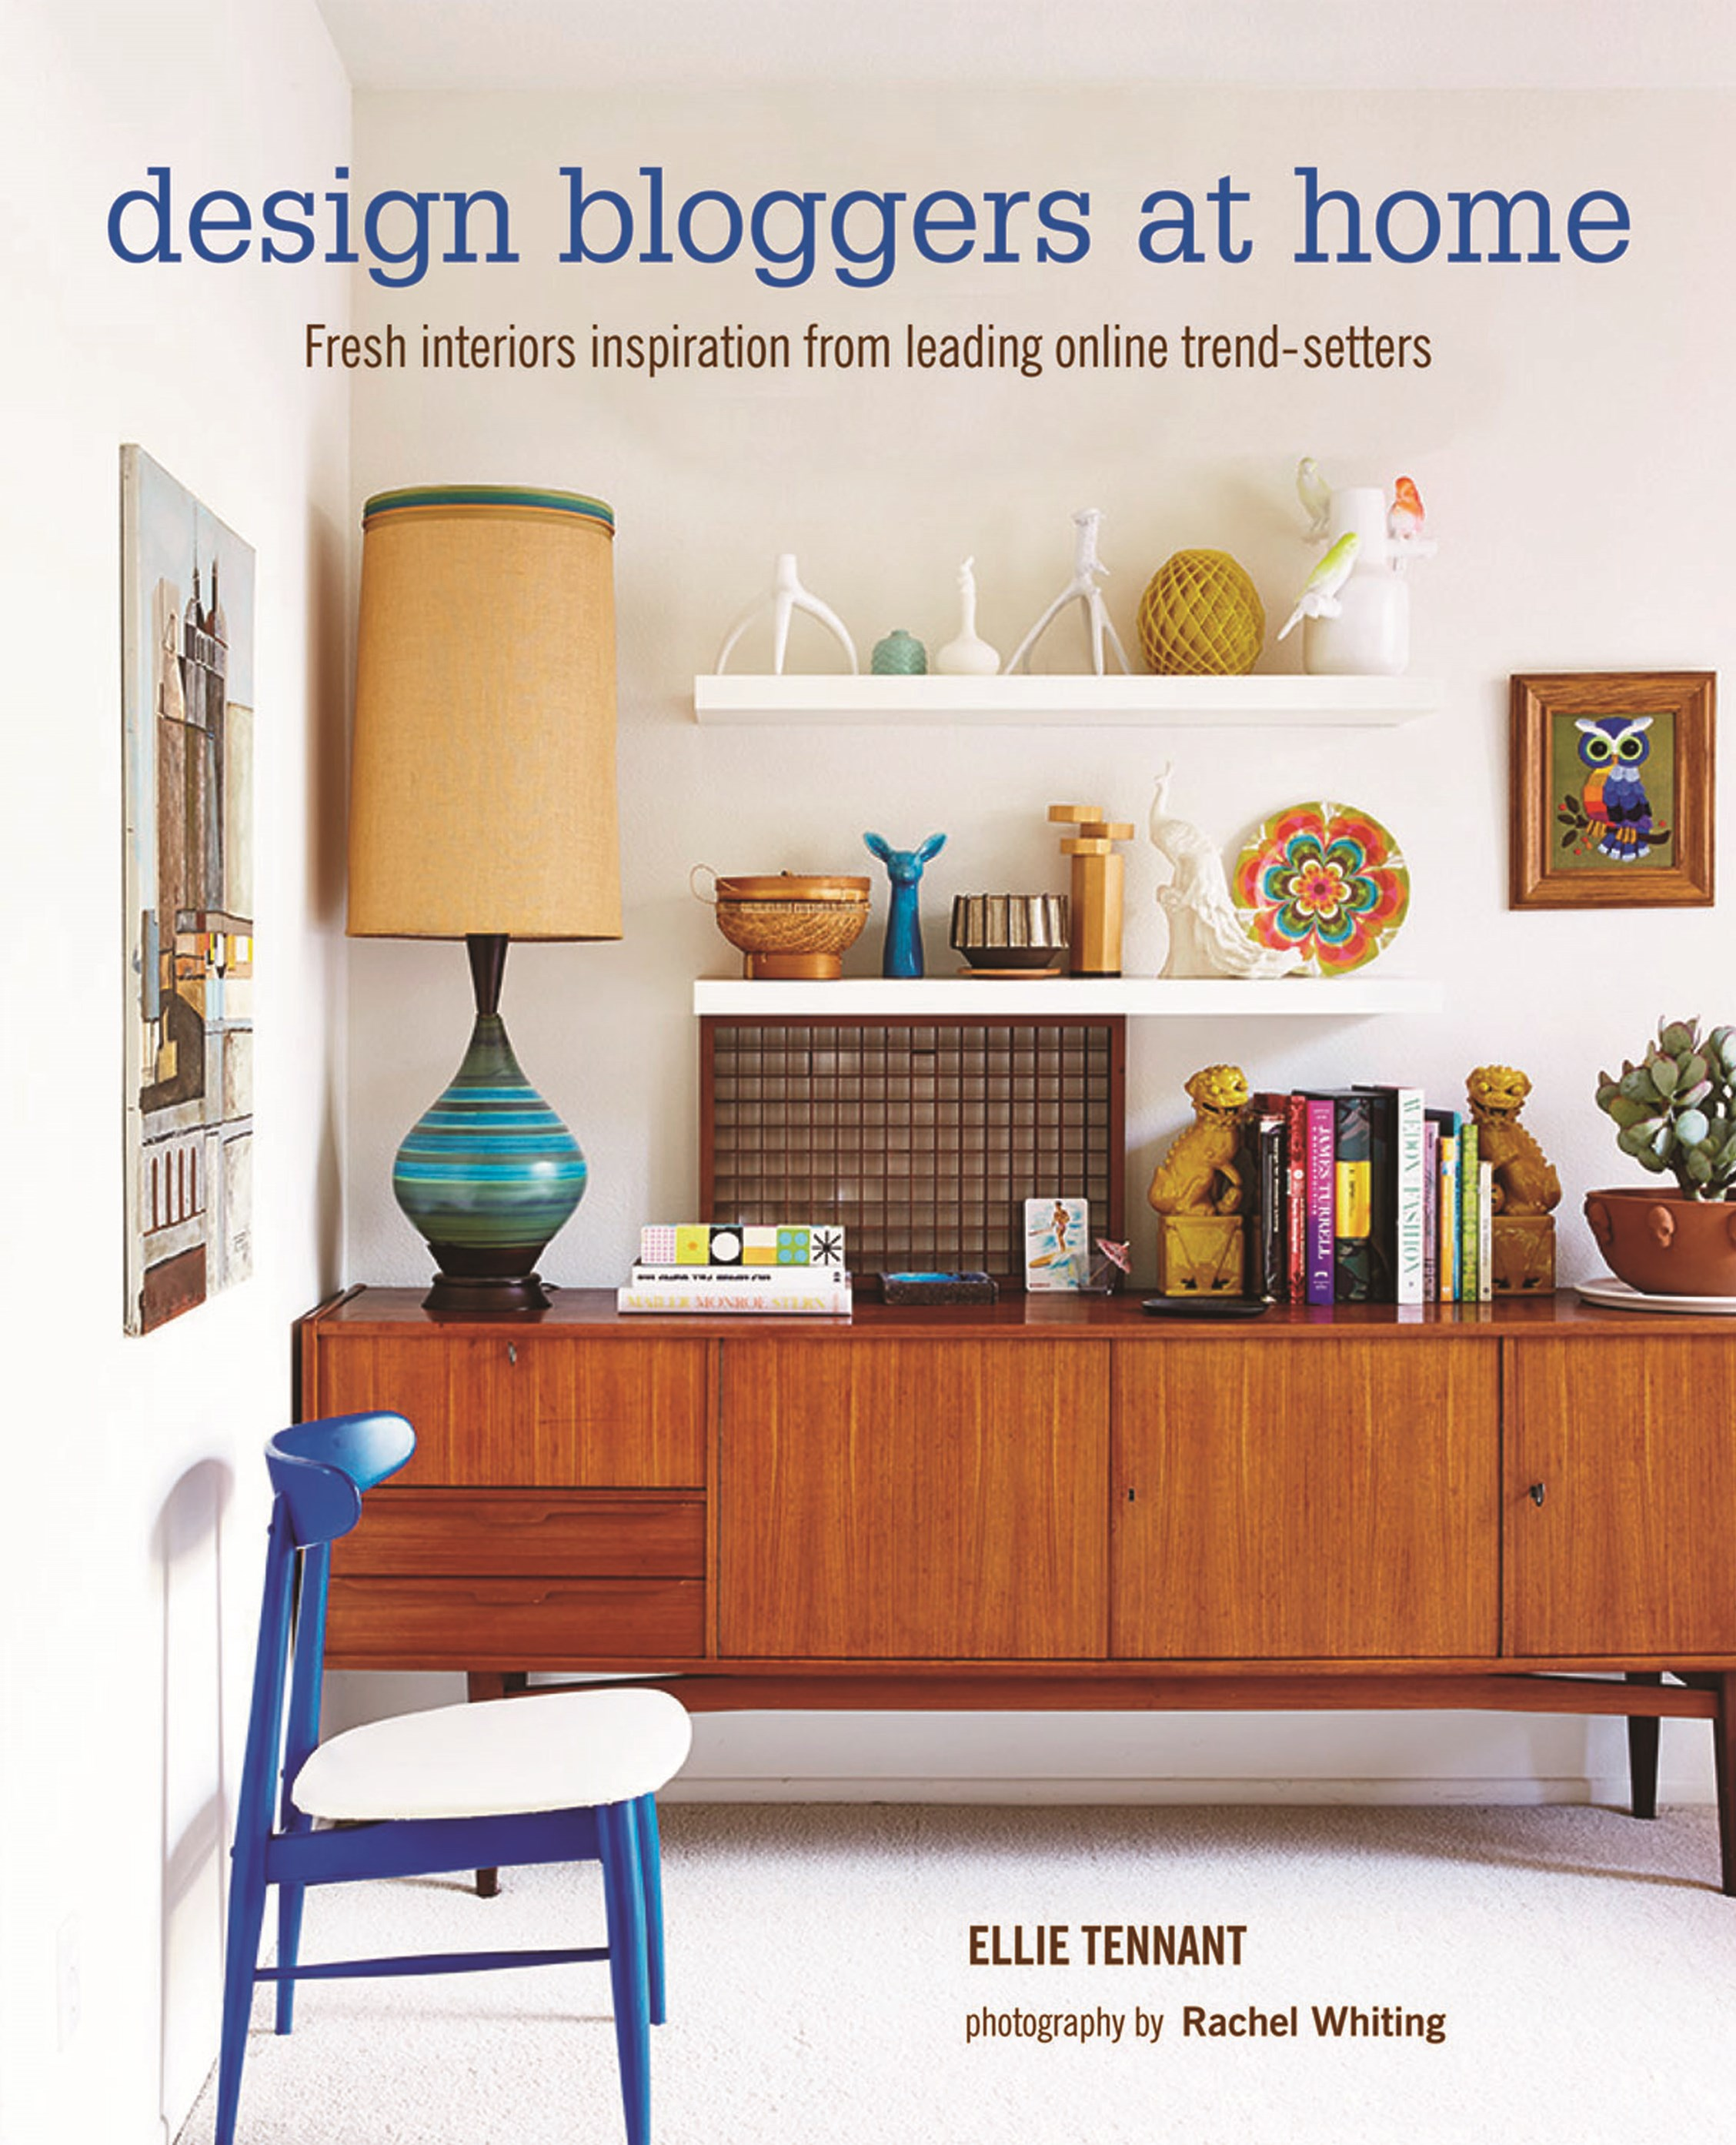 Design Bloggers at Home